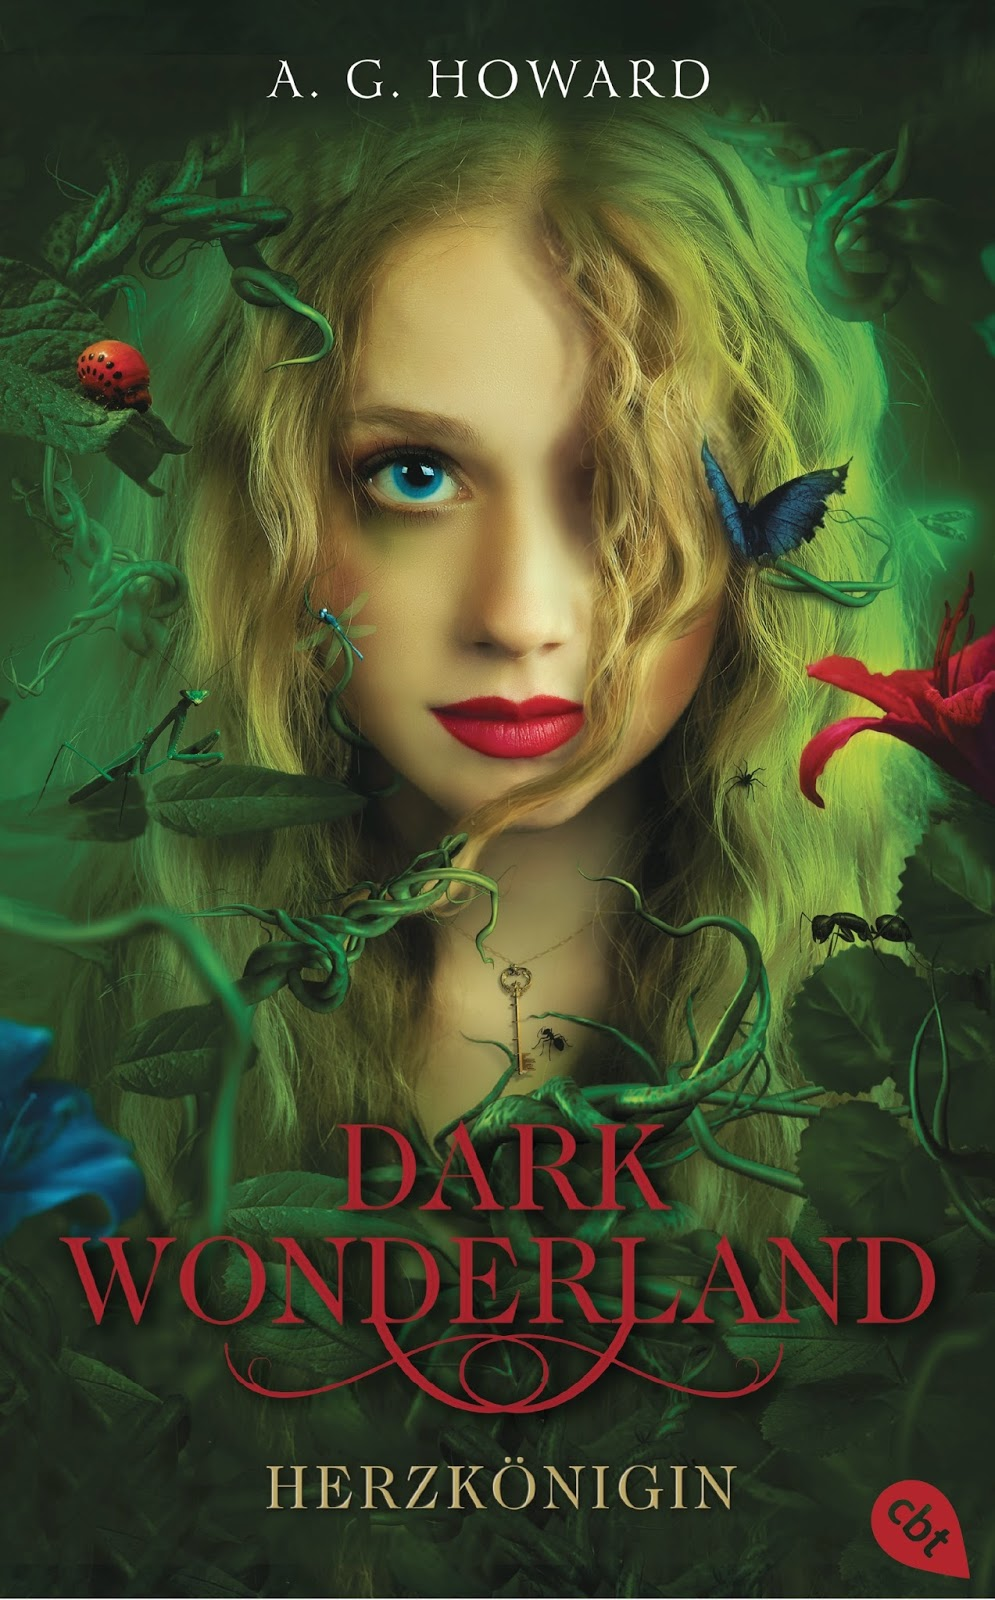 http://www.randomhouse.de/content/edition/covervoila_hires/Howard_AGDark_Wonderland_01_147758.jpg